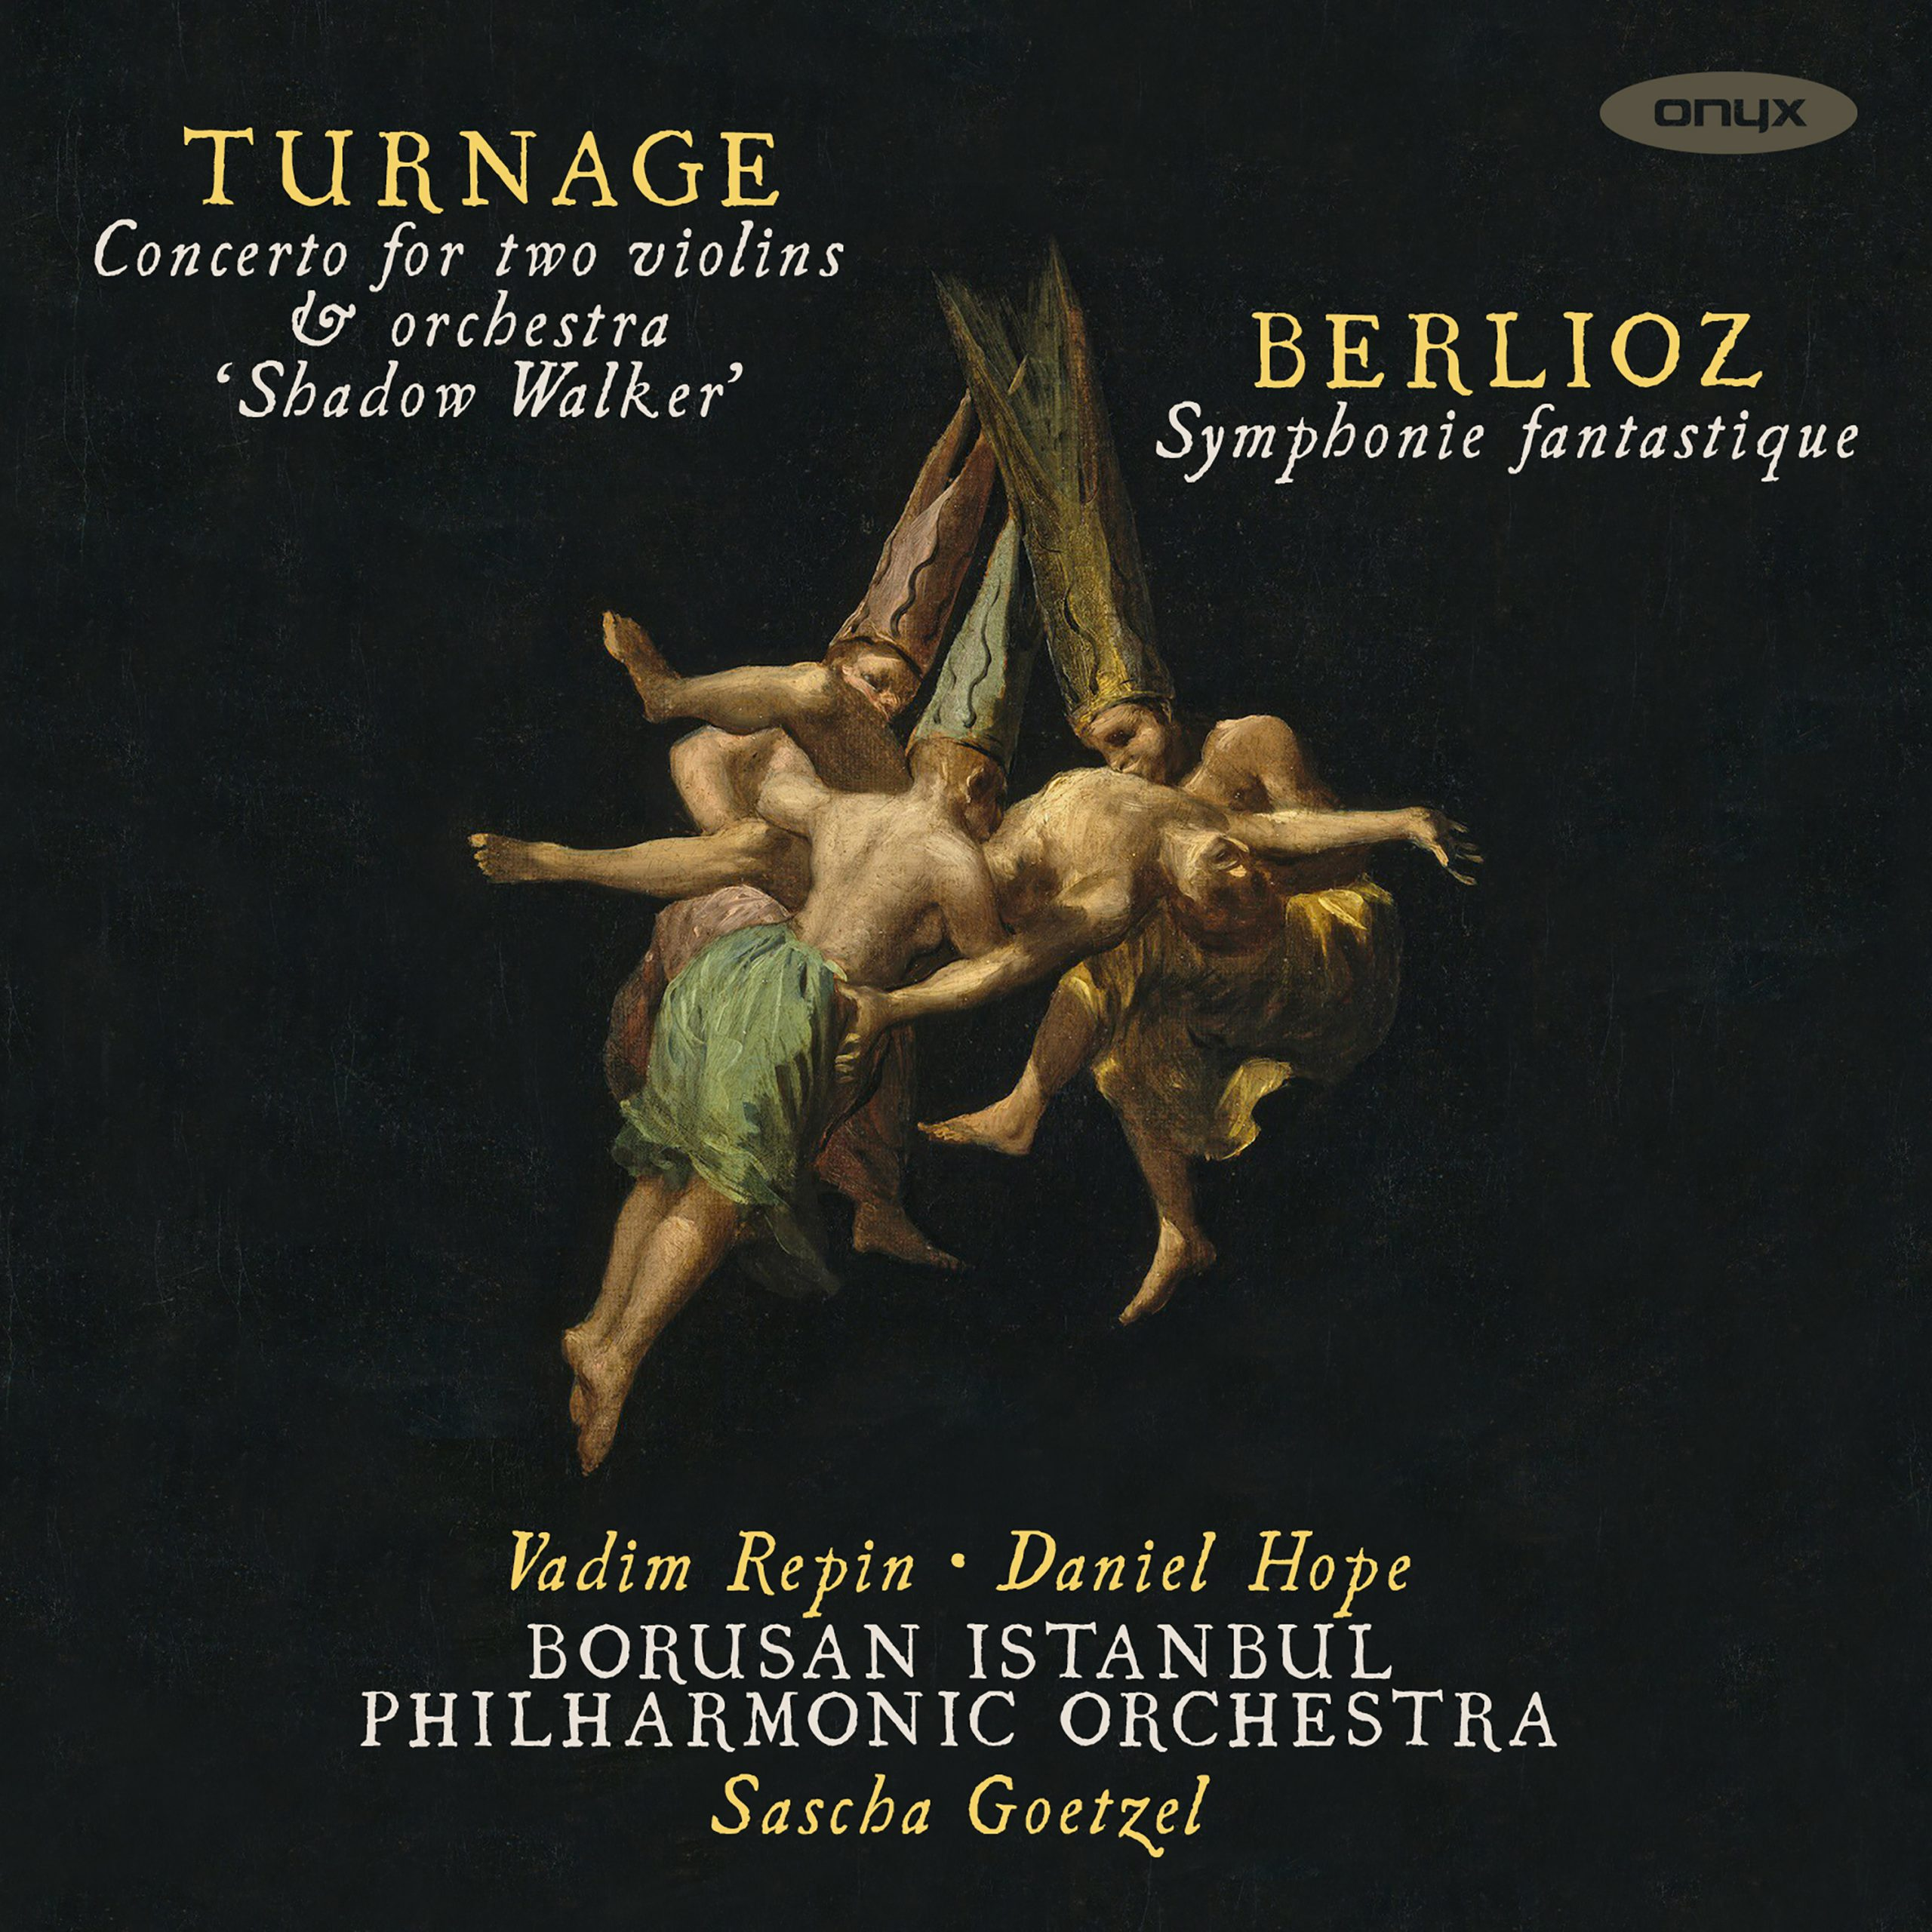 "Turnage: Concerto for 2 Violins ""Shadow Walker"" / Berlioz: Symphonie fantastique"